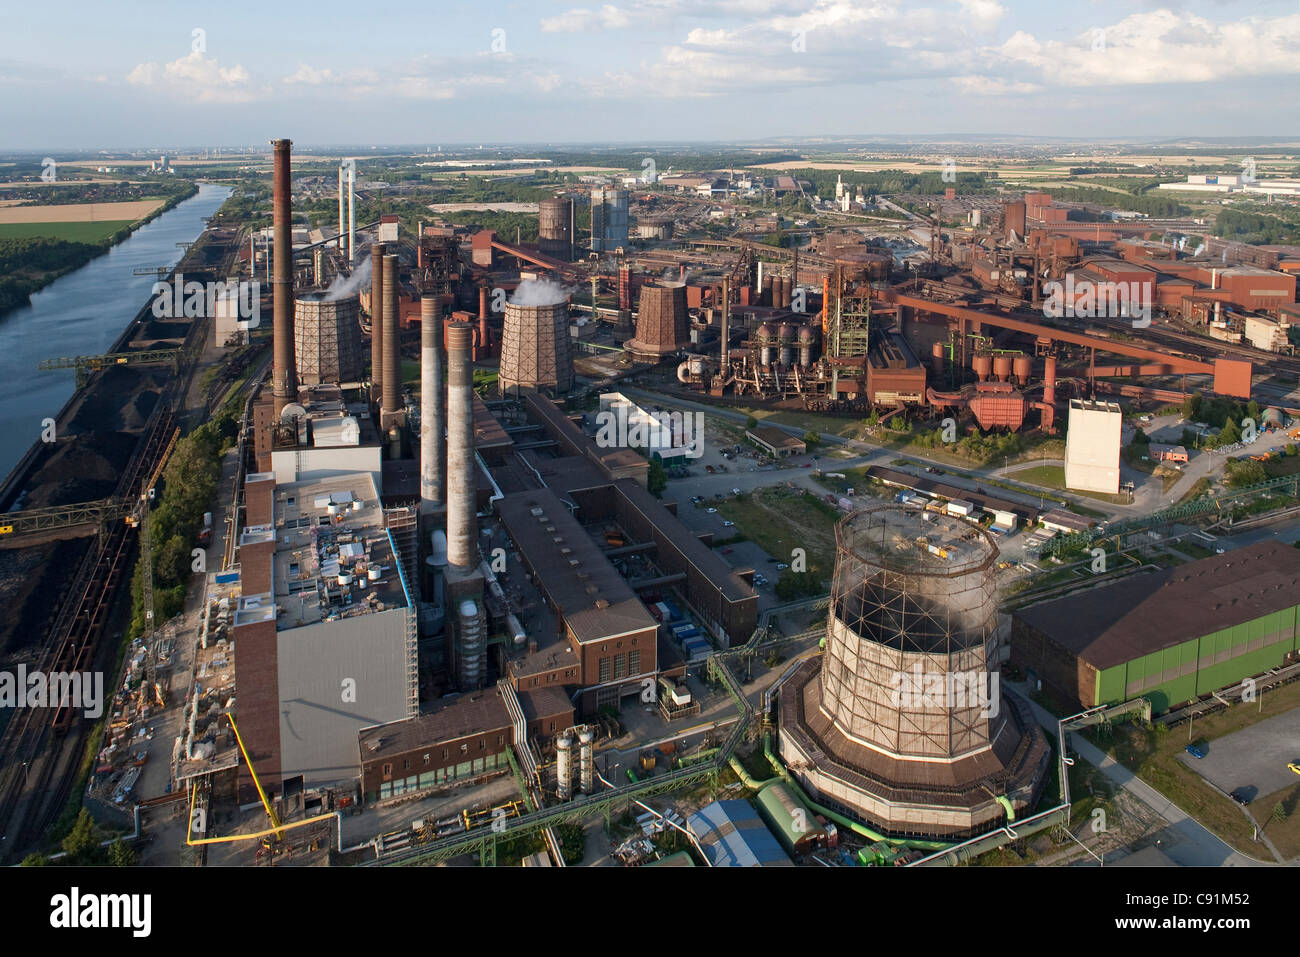 Aerial of Salzgitter Steelworks, Lower Saxony, Germany - Stock Image